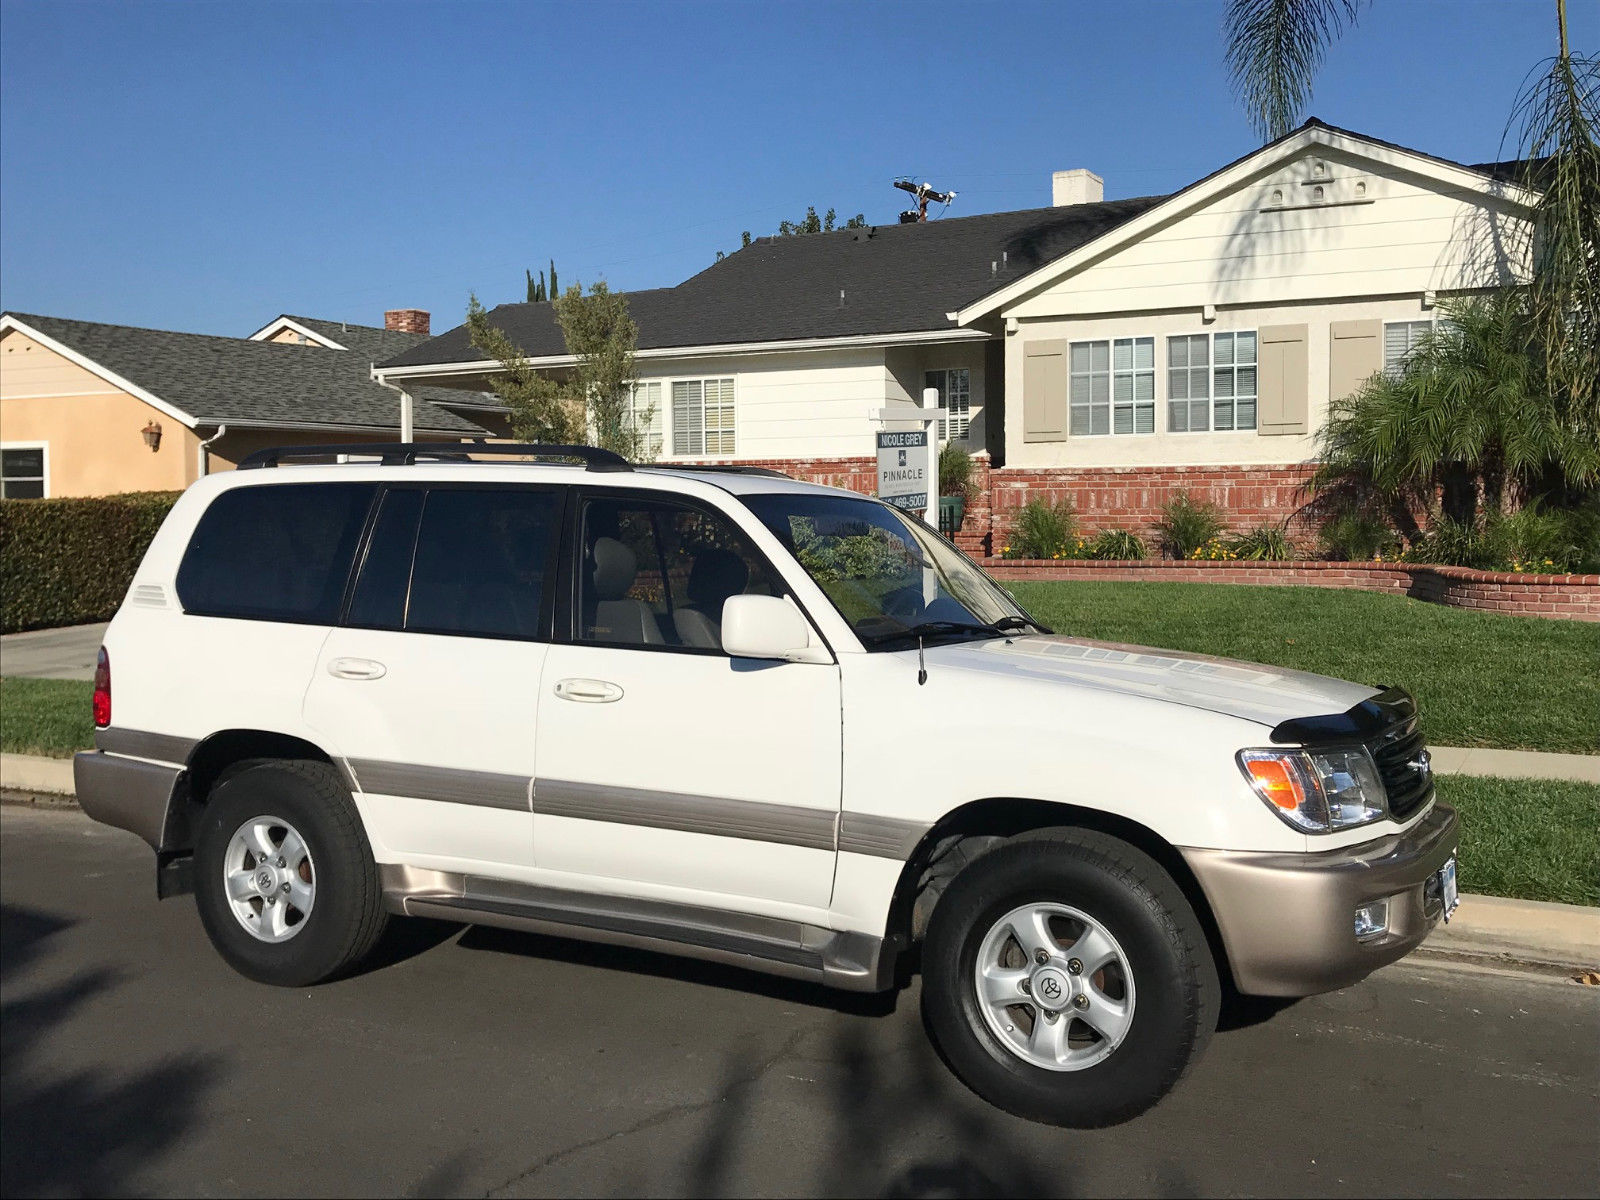 2000 toyota land cruiser 2000 toyota land cruiser 100 series 2017 2018 mycarboard com mycarboard com